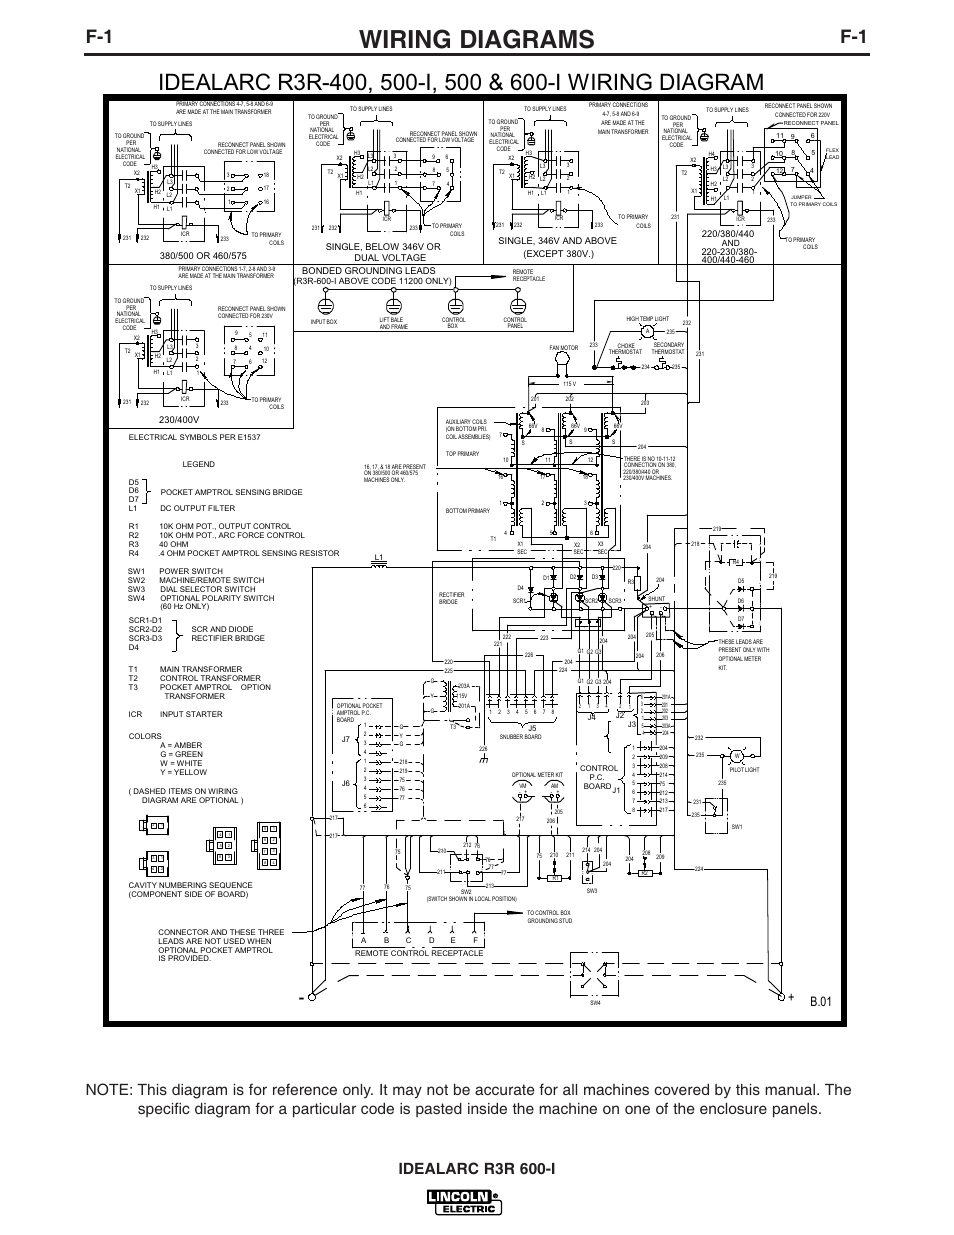 Lincoln Dc 400 Wiring Diagram Diy Enthusiasts Diagrams Weldanpower L9376 B 01 Electric Idealarc R3r 600 I Rh Manualsdir Com 1999 Town Car 1965